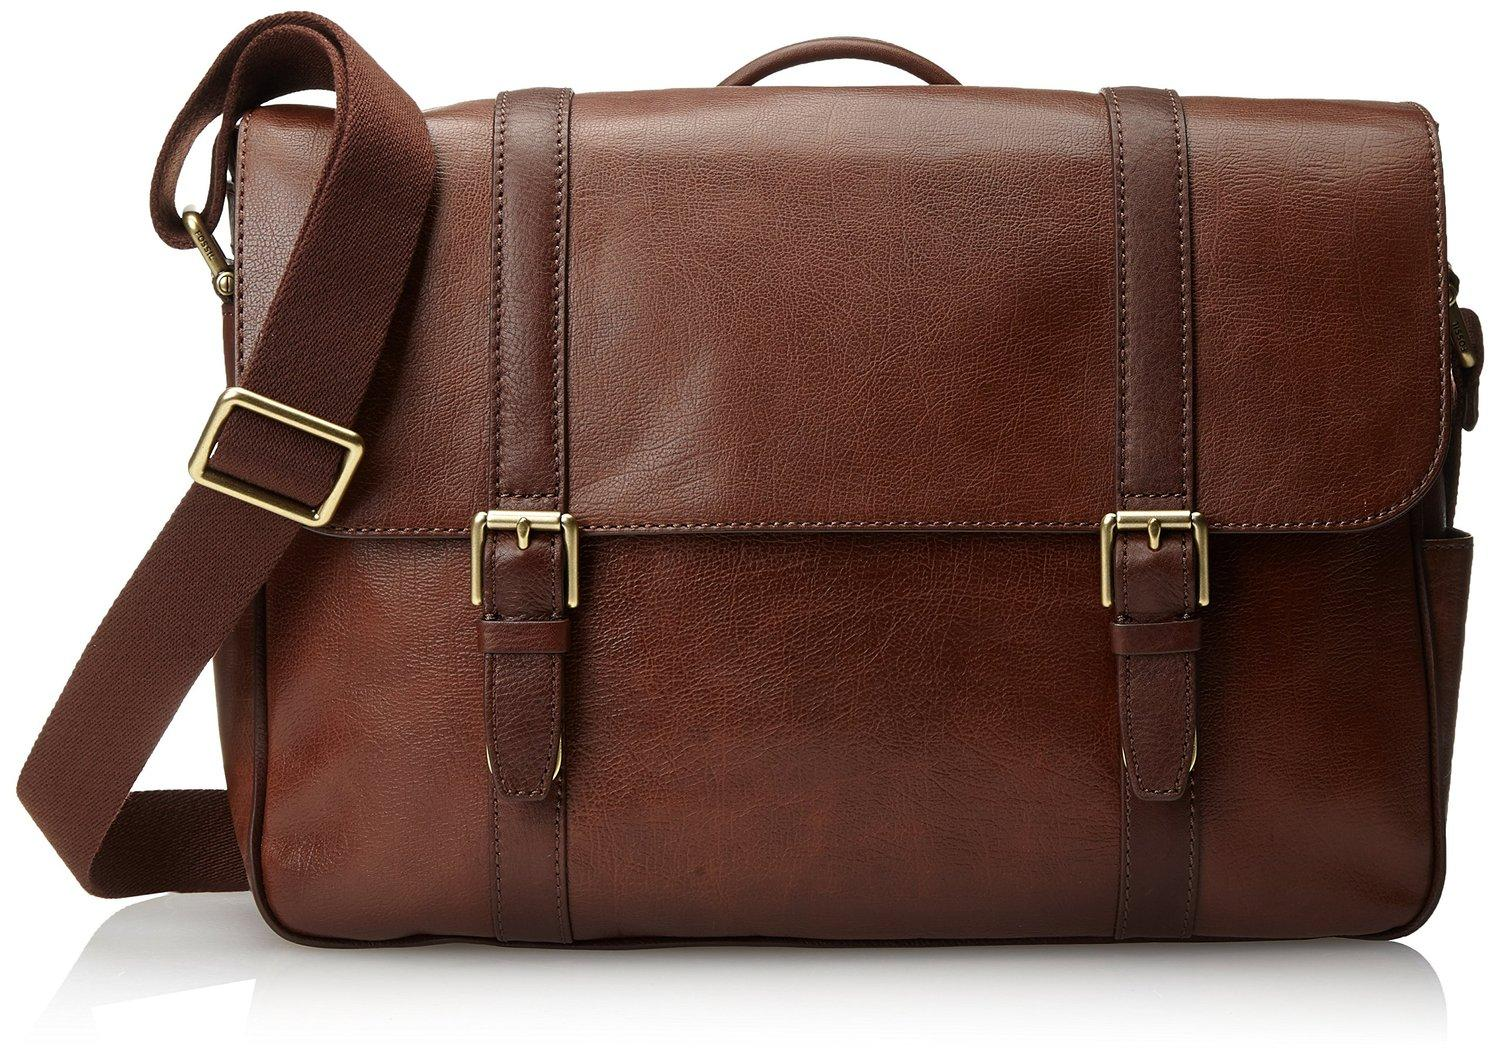 Fossil Men's Estate Saffiano Leather EW Messenger Bag